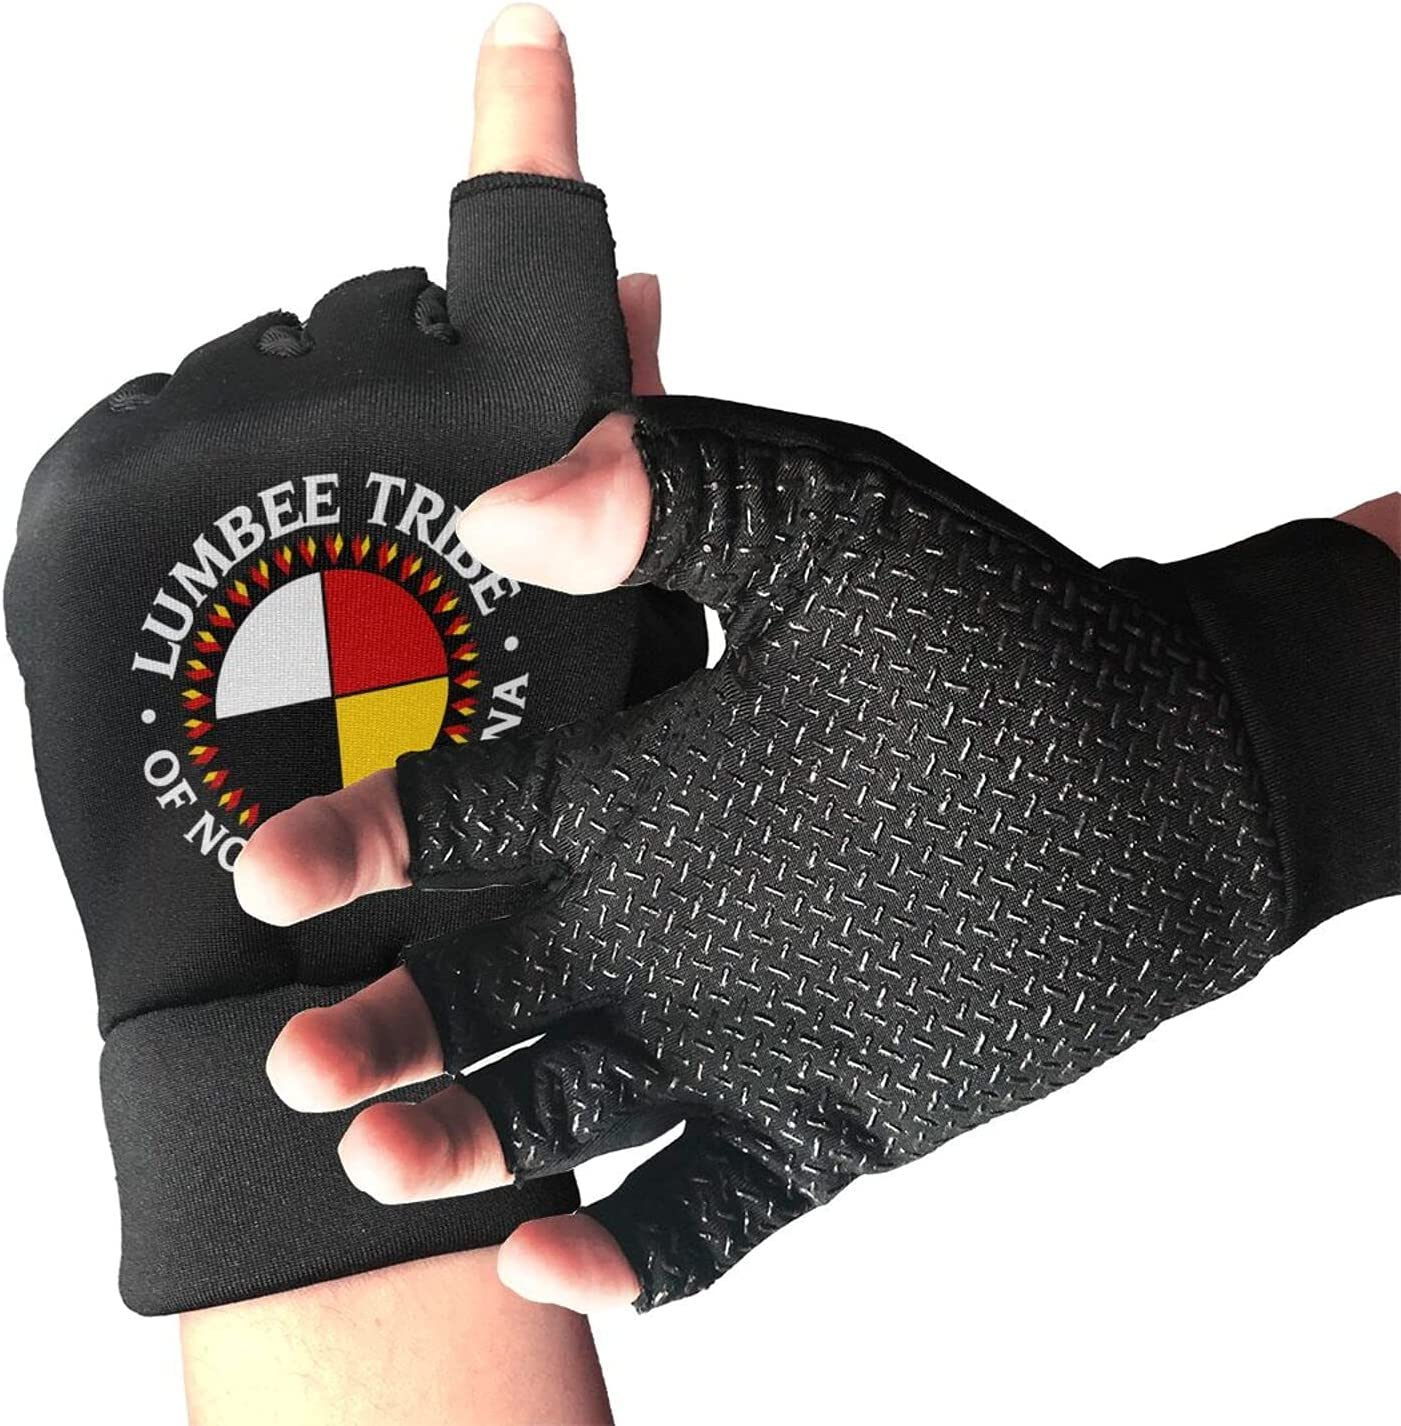 Lumbee Tribe of North Carolina Suitable Exerci for Sports Gloves Max Outlet SALE 72% OFF